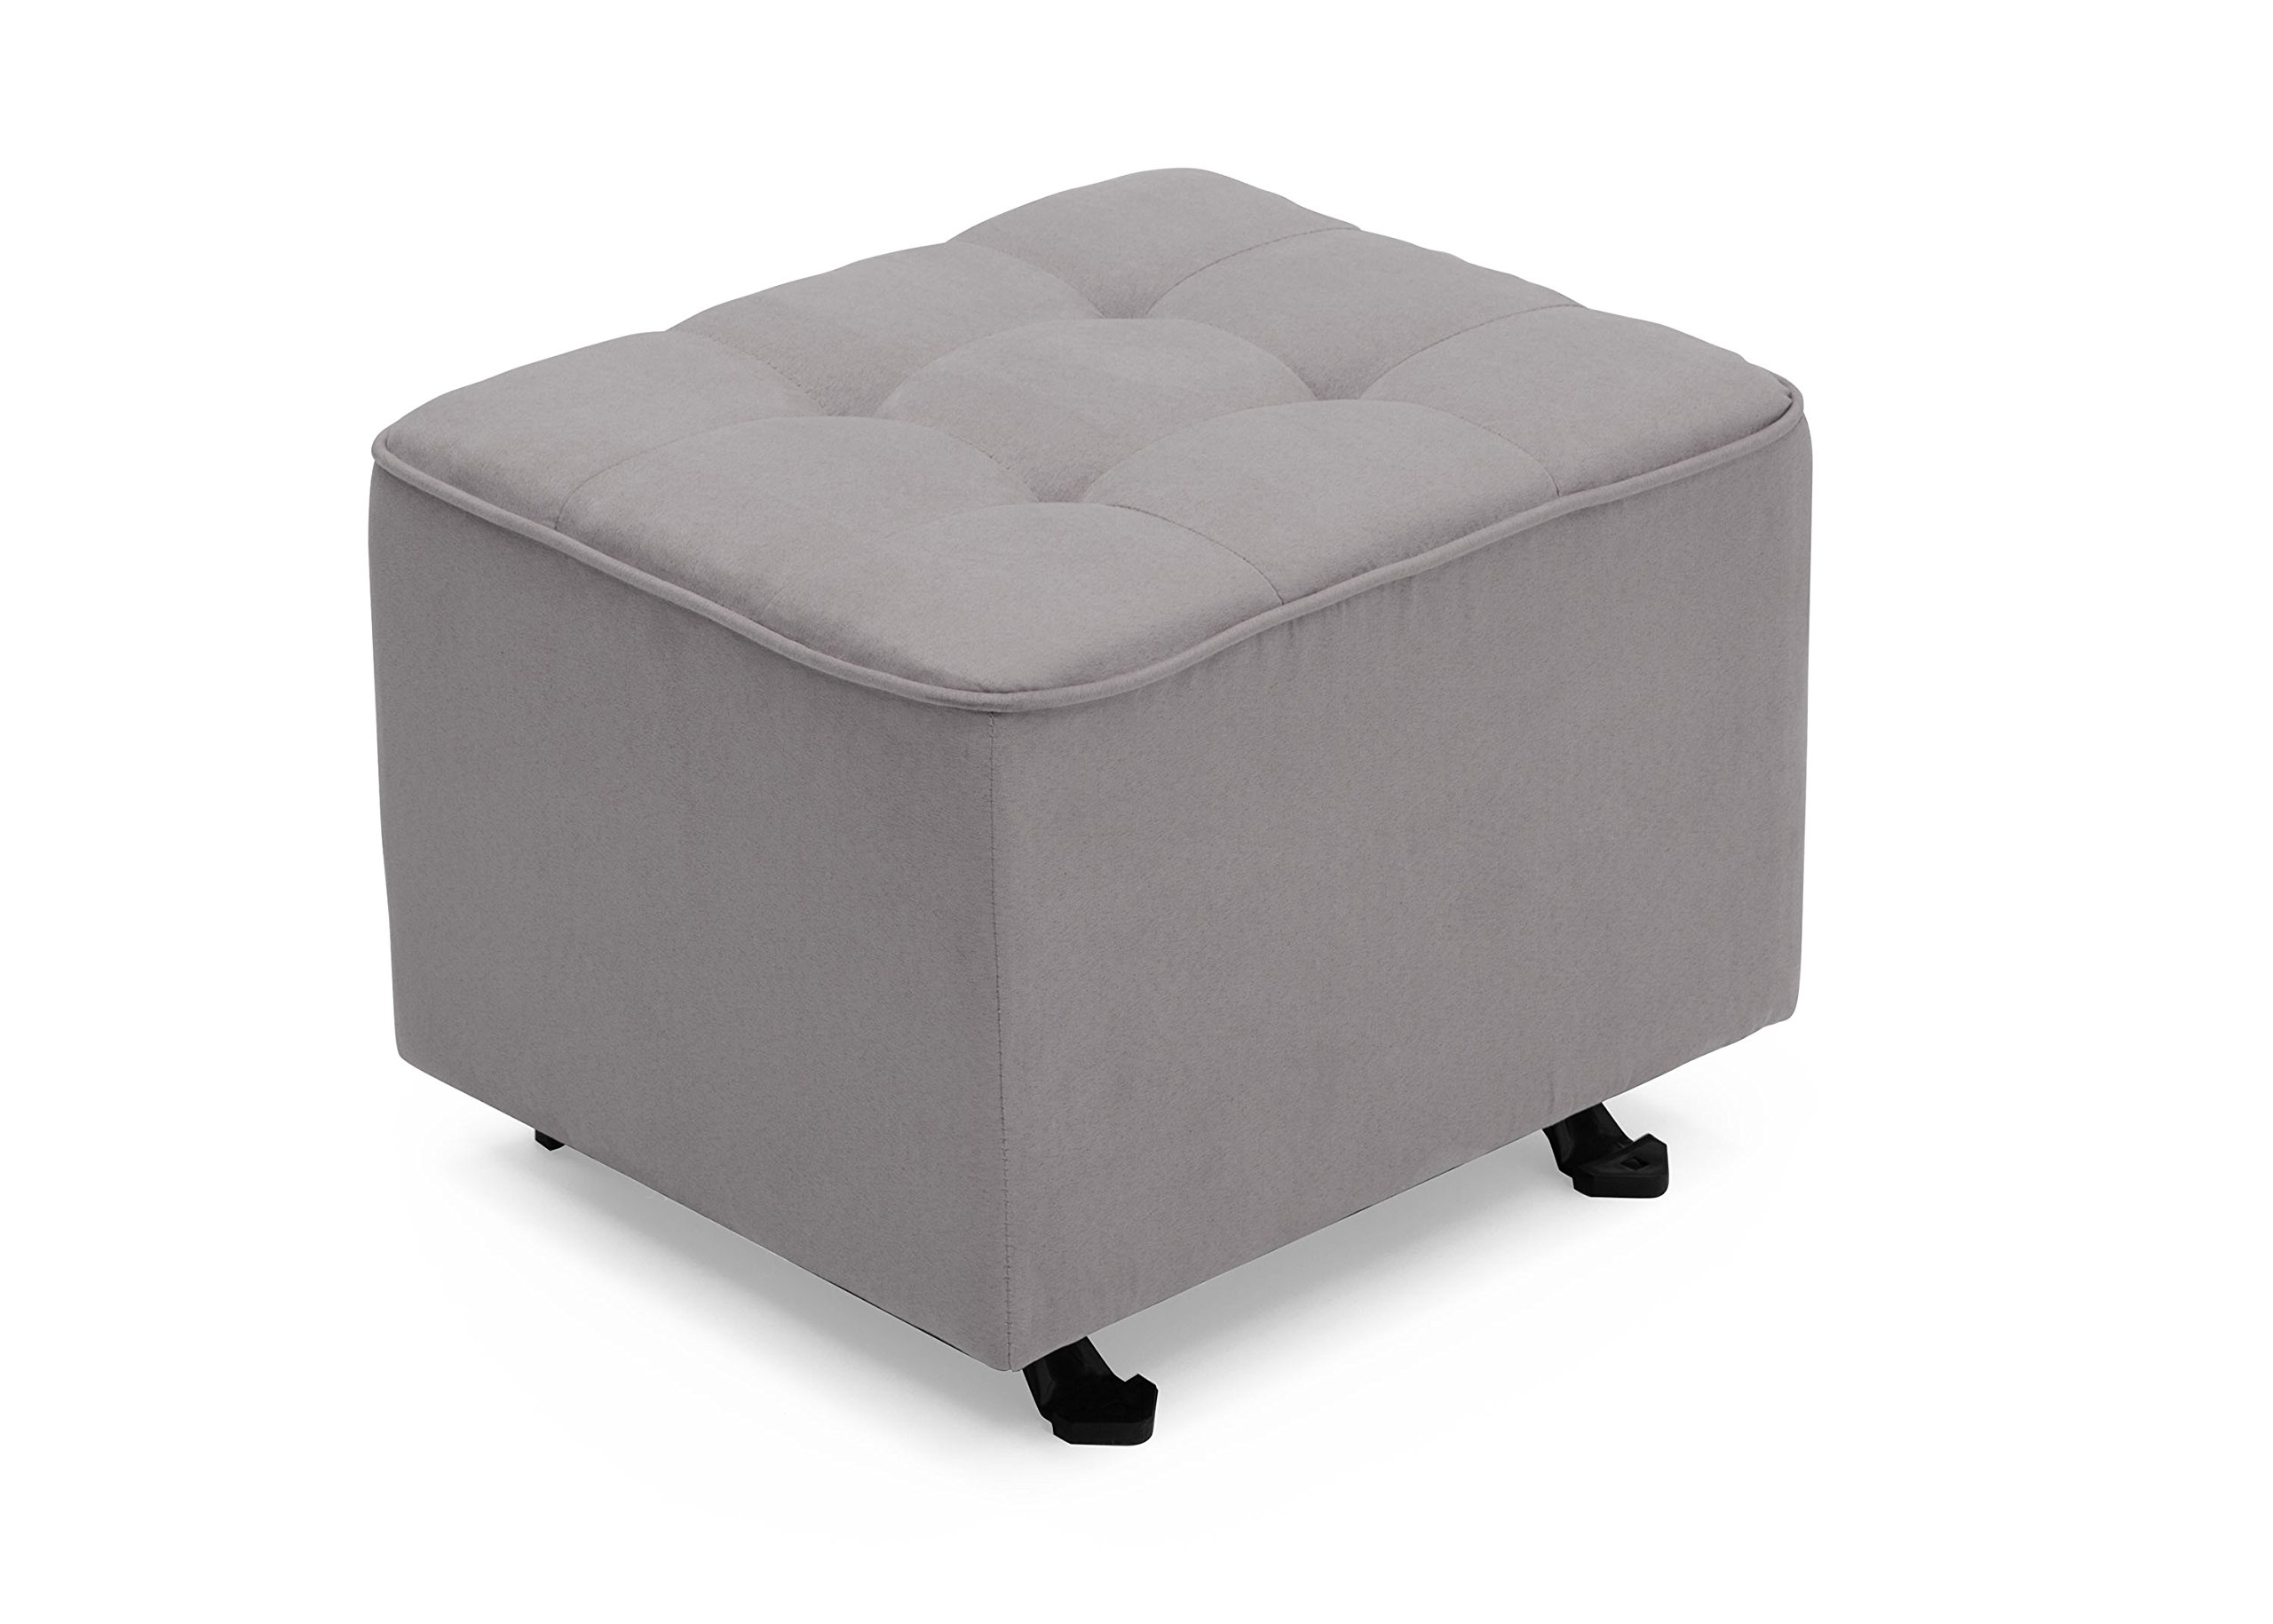 Delta Furniture Tufted Gliding Ottoman, Dove Grey